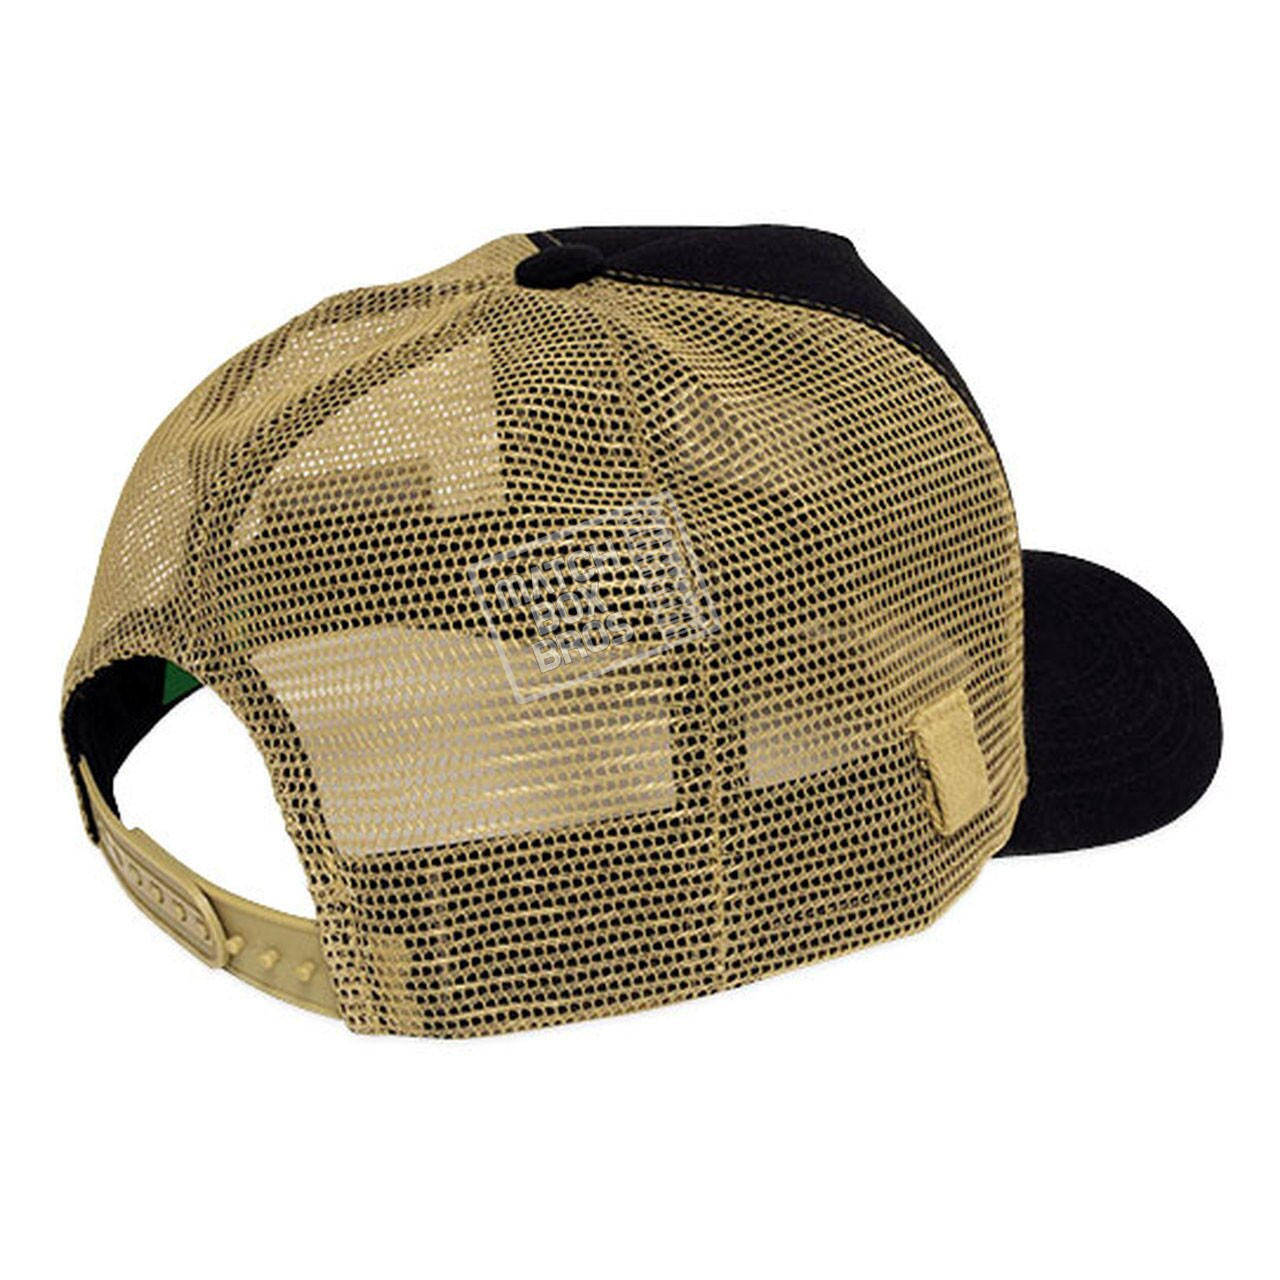 RAW Brazil Black Trucker Hat 02